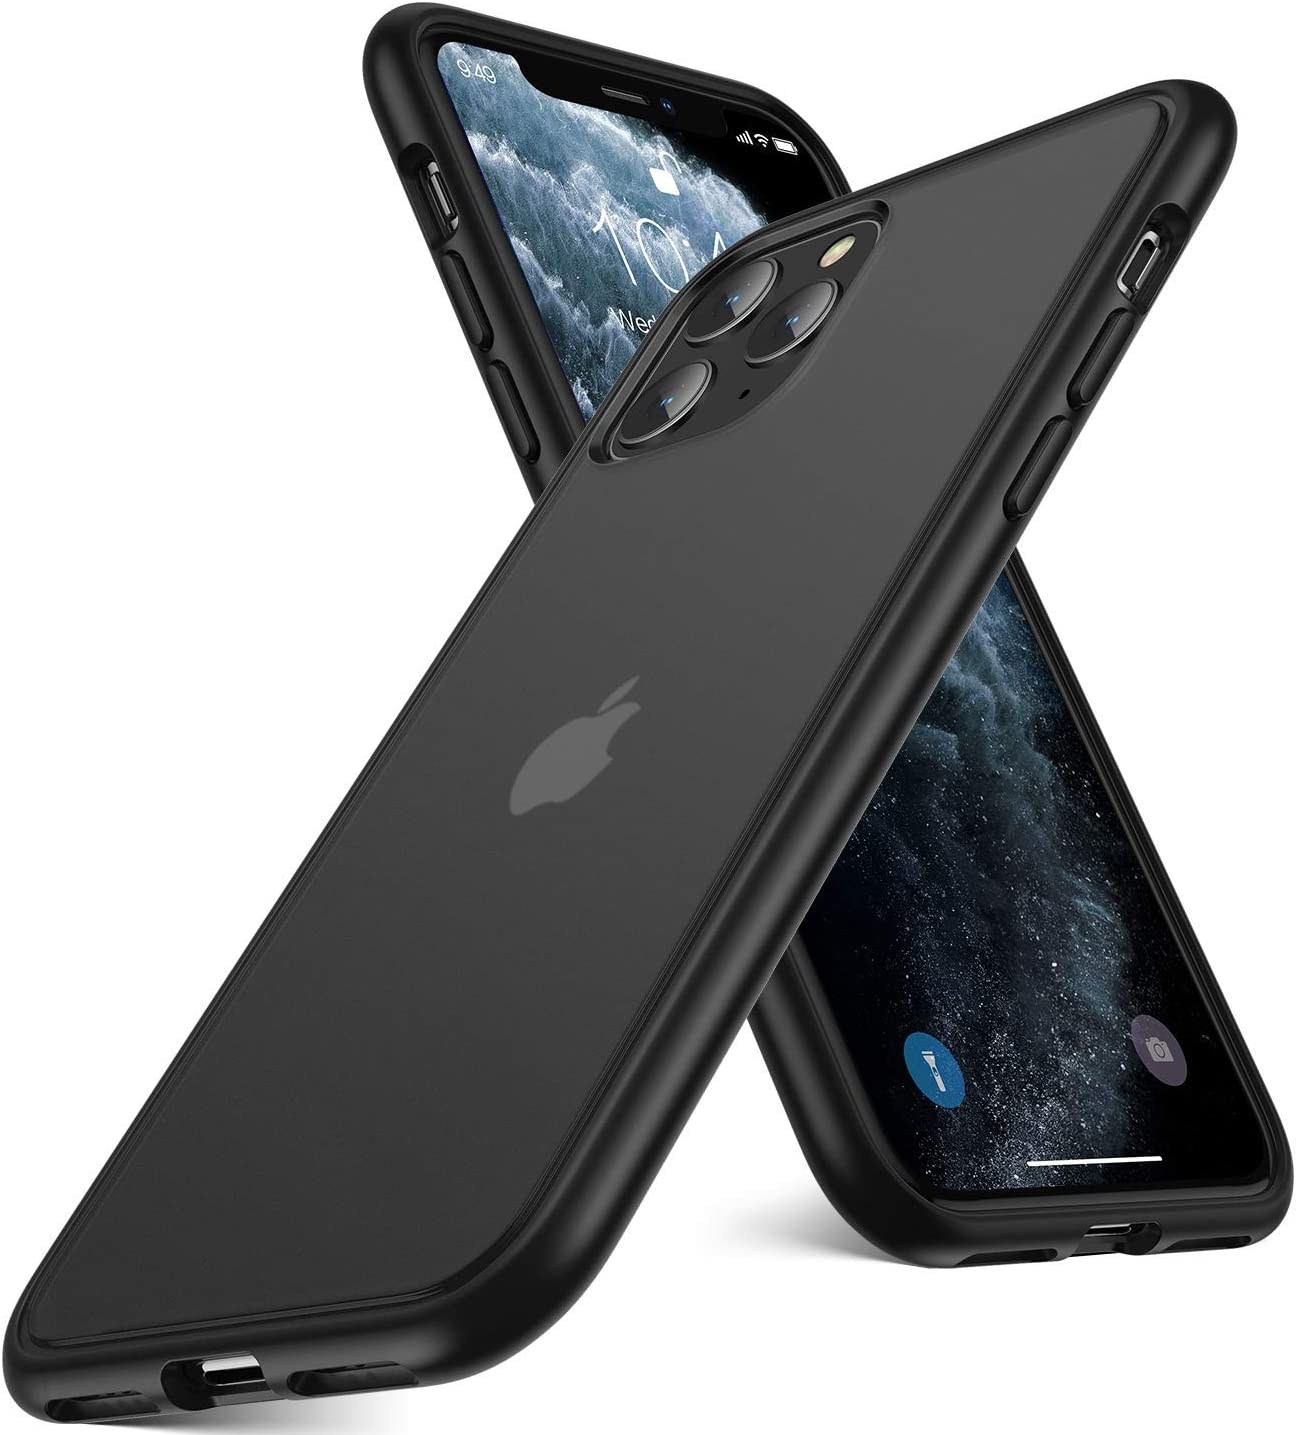 Humixx Shockproof Series iPhone 11 Pro Max Case Cover, [Military Grade Drop Tested] [2nd Generation] Translucent Matte Case with Soft Edges, Anti-Drop Protective Case for iPhone 11 Pro Max 6.5 inch